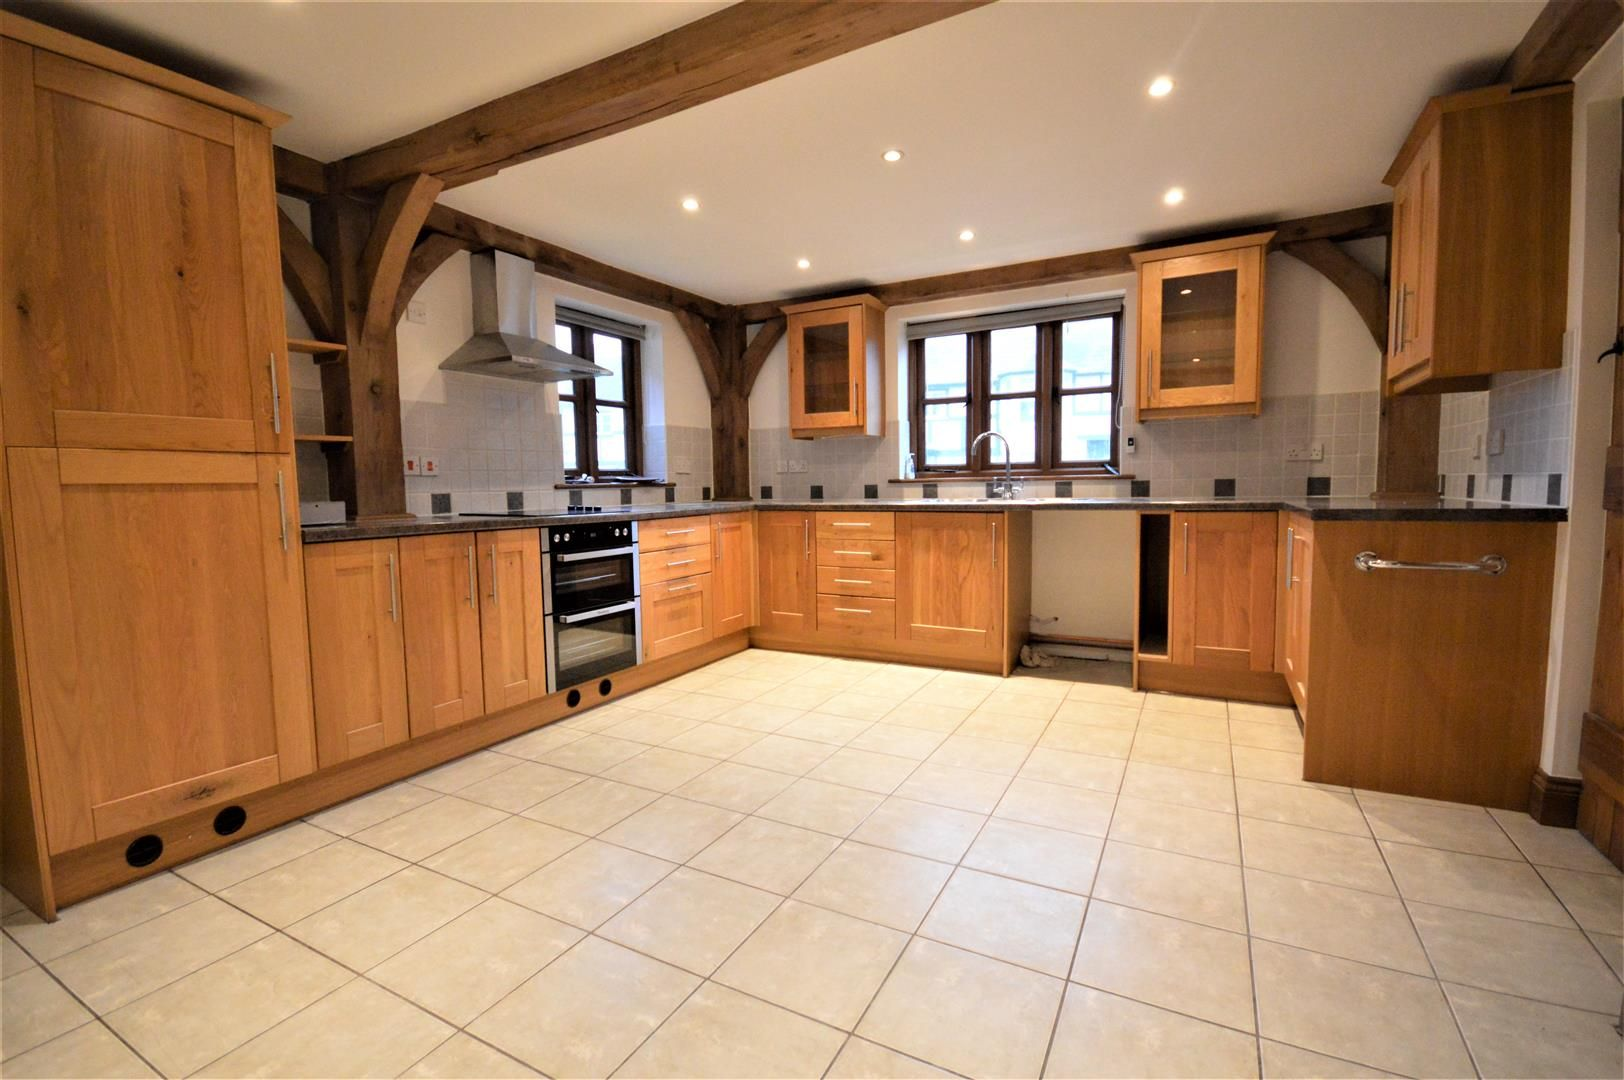 4 bed semi-detached to rent in Weobley  - Property Image 2